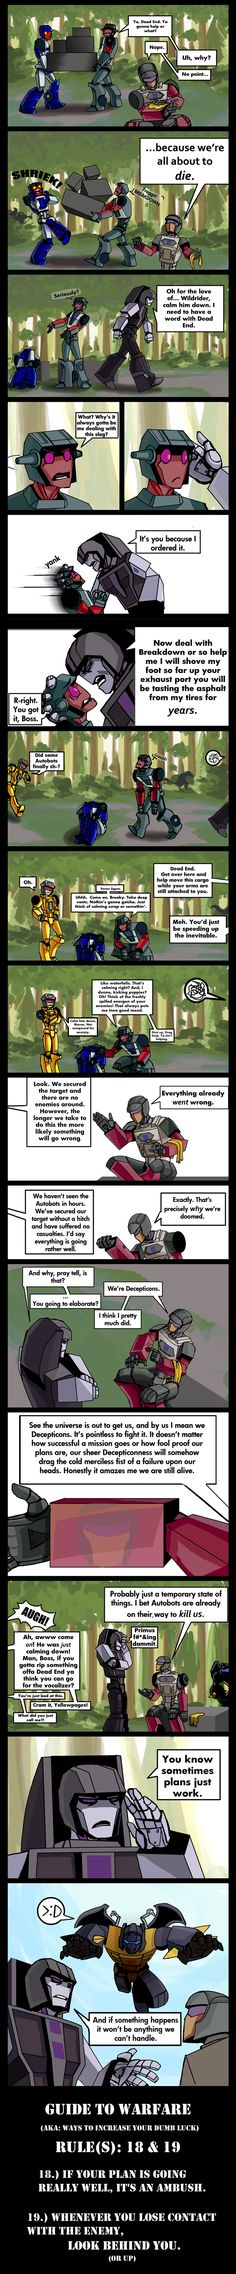 "I love how Motormaster outright threatens Wildrider, who immediately falls in line out of fear (panel 5 is gold), but he has to gently - well, as gentle as MM can possibly be - cajole Dead End into activity, as threats mean nothing to him. (""Meh. Go ahead and rip my arms off."" ) Perfect characterization, as per their original G1 bios. I love how the fans write better stuff than what the IDW writers are currently doing.  Oh, and ""Yellowpages!"""